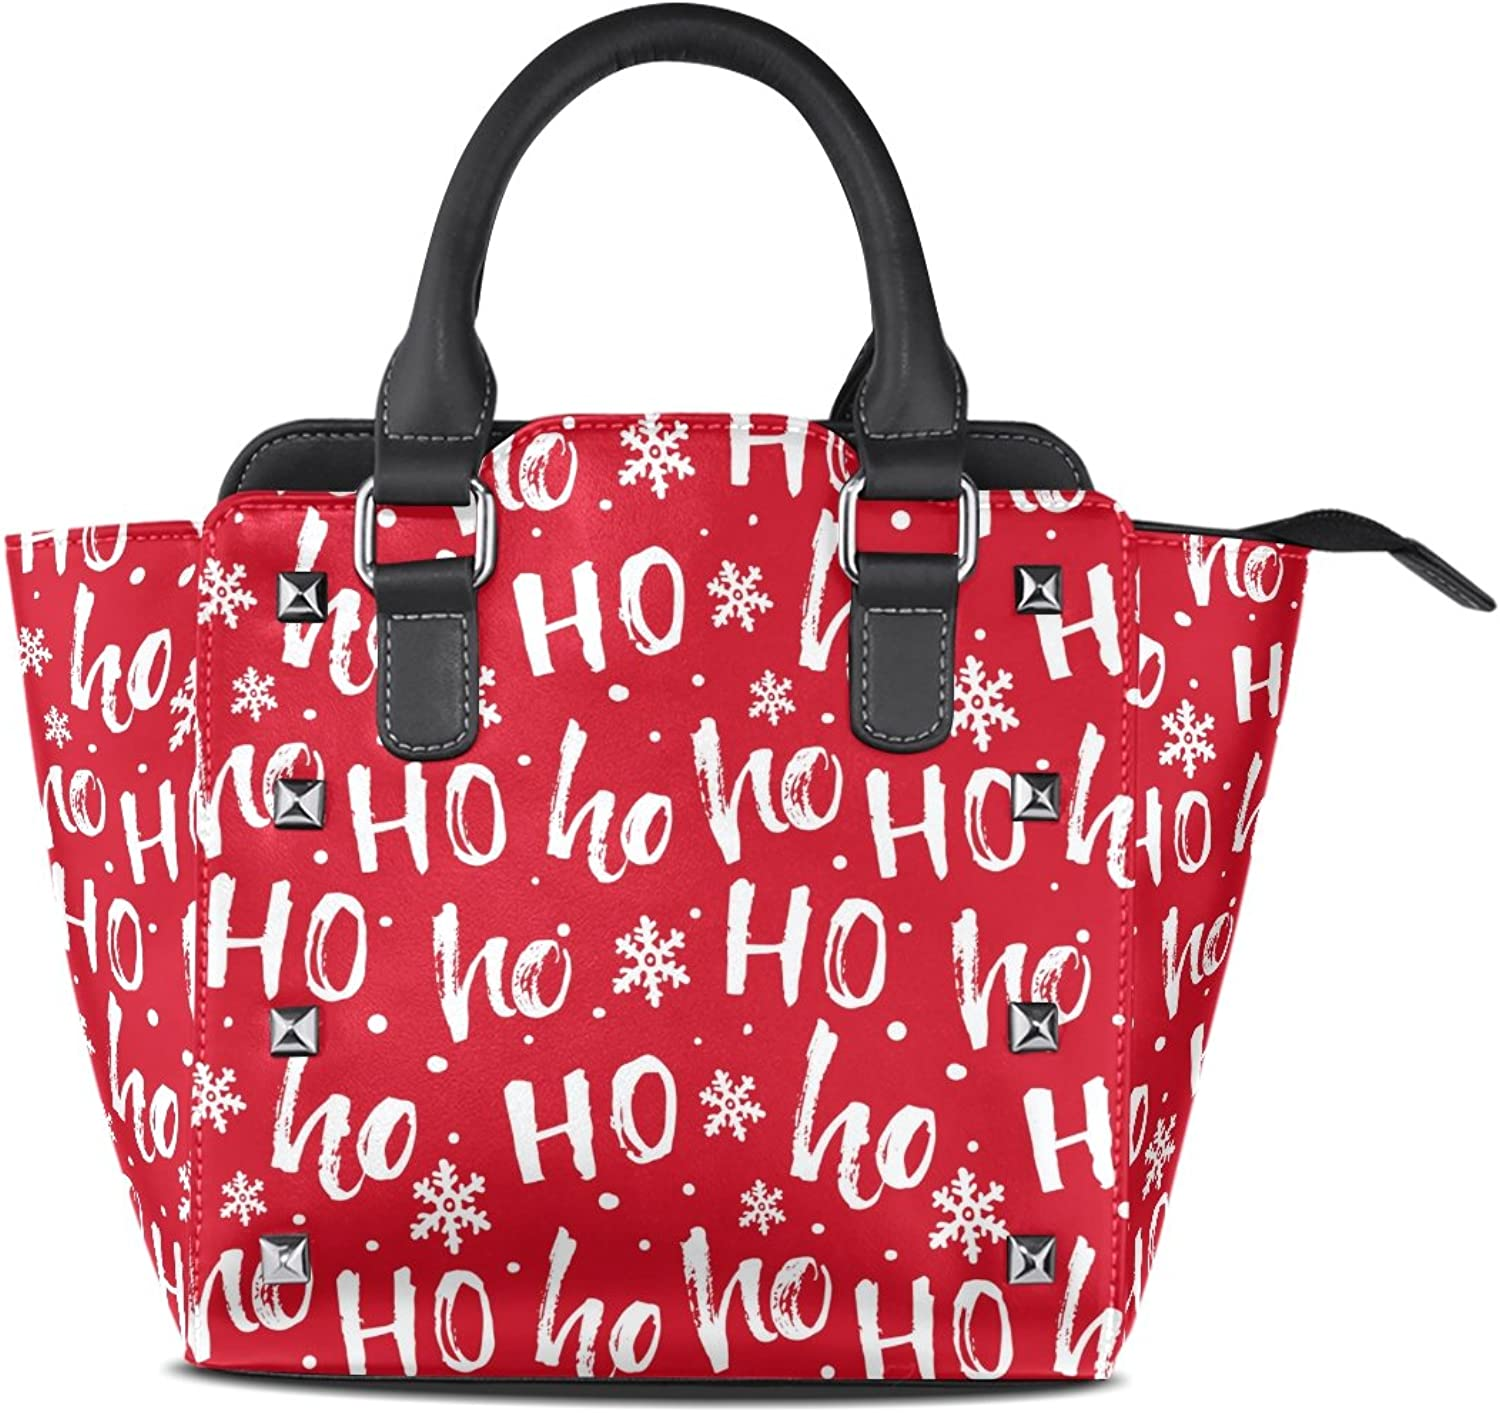 My Little Nest Women's Top Handle Satchel Handbag Christmas Santa Claus Laugh Ho Red Background Ladies PU Leather Shoulder Bag Crossbody Bag